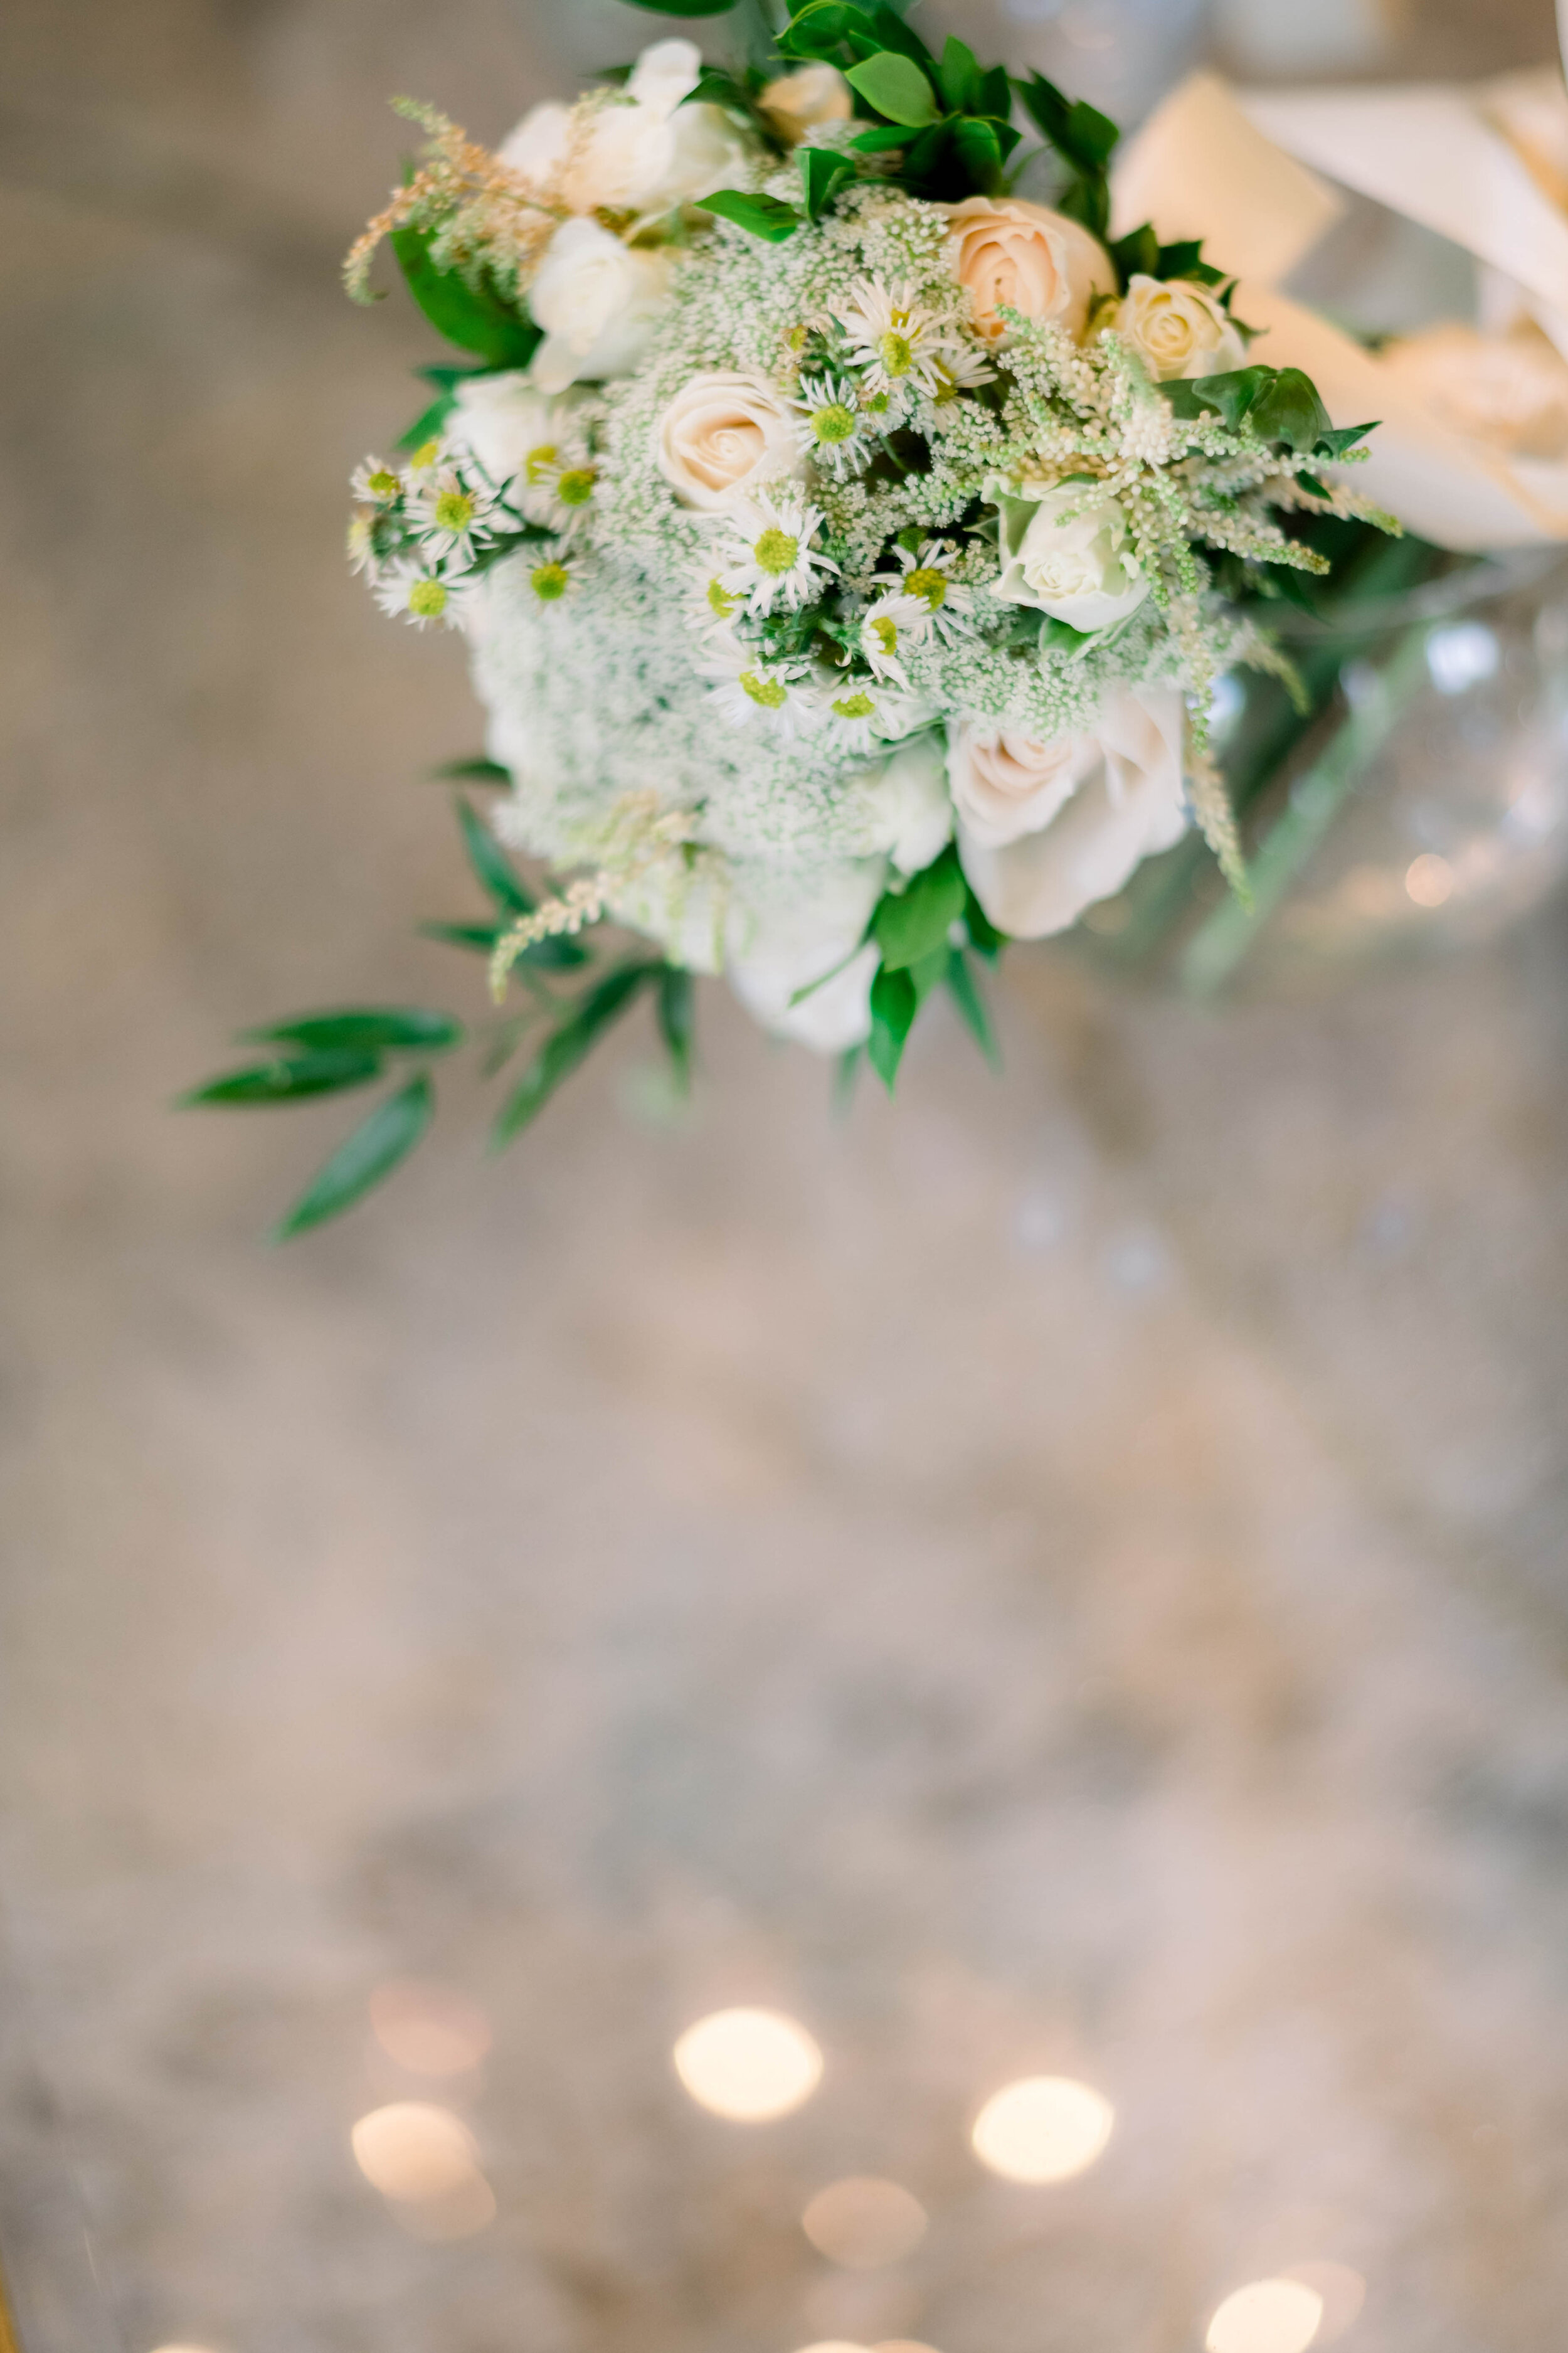 Luxury wedding at the Park Chateau in New Jersey with Slovic ceremony by Liz Andolina Photography